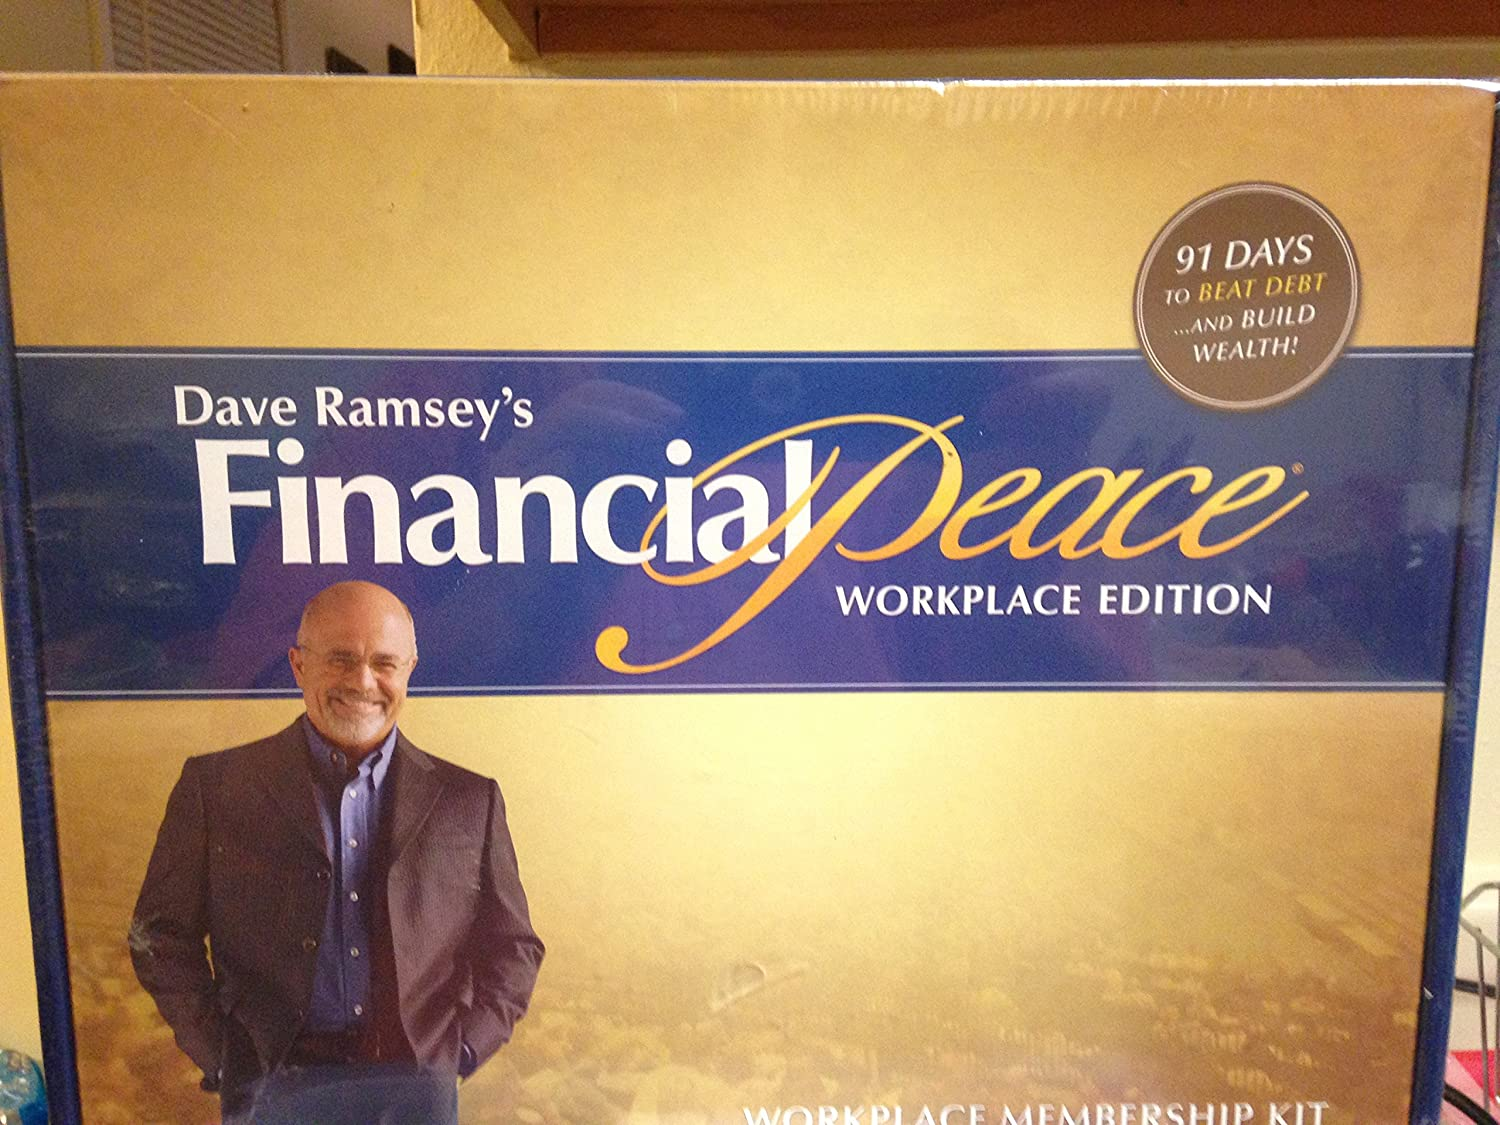 Amazon.com: Dave Ramsey's Financial Peace Workplace Edition ...